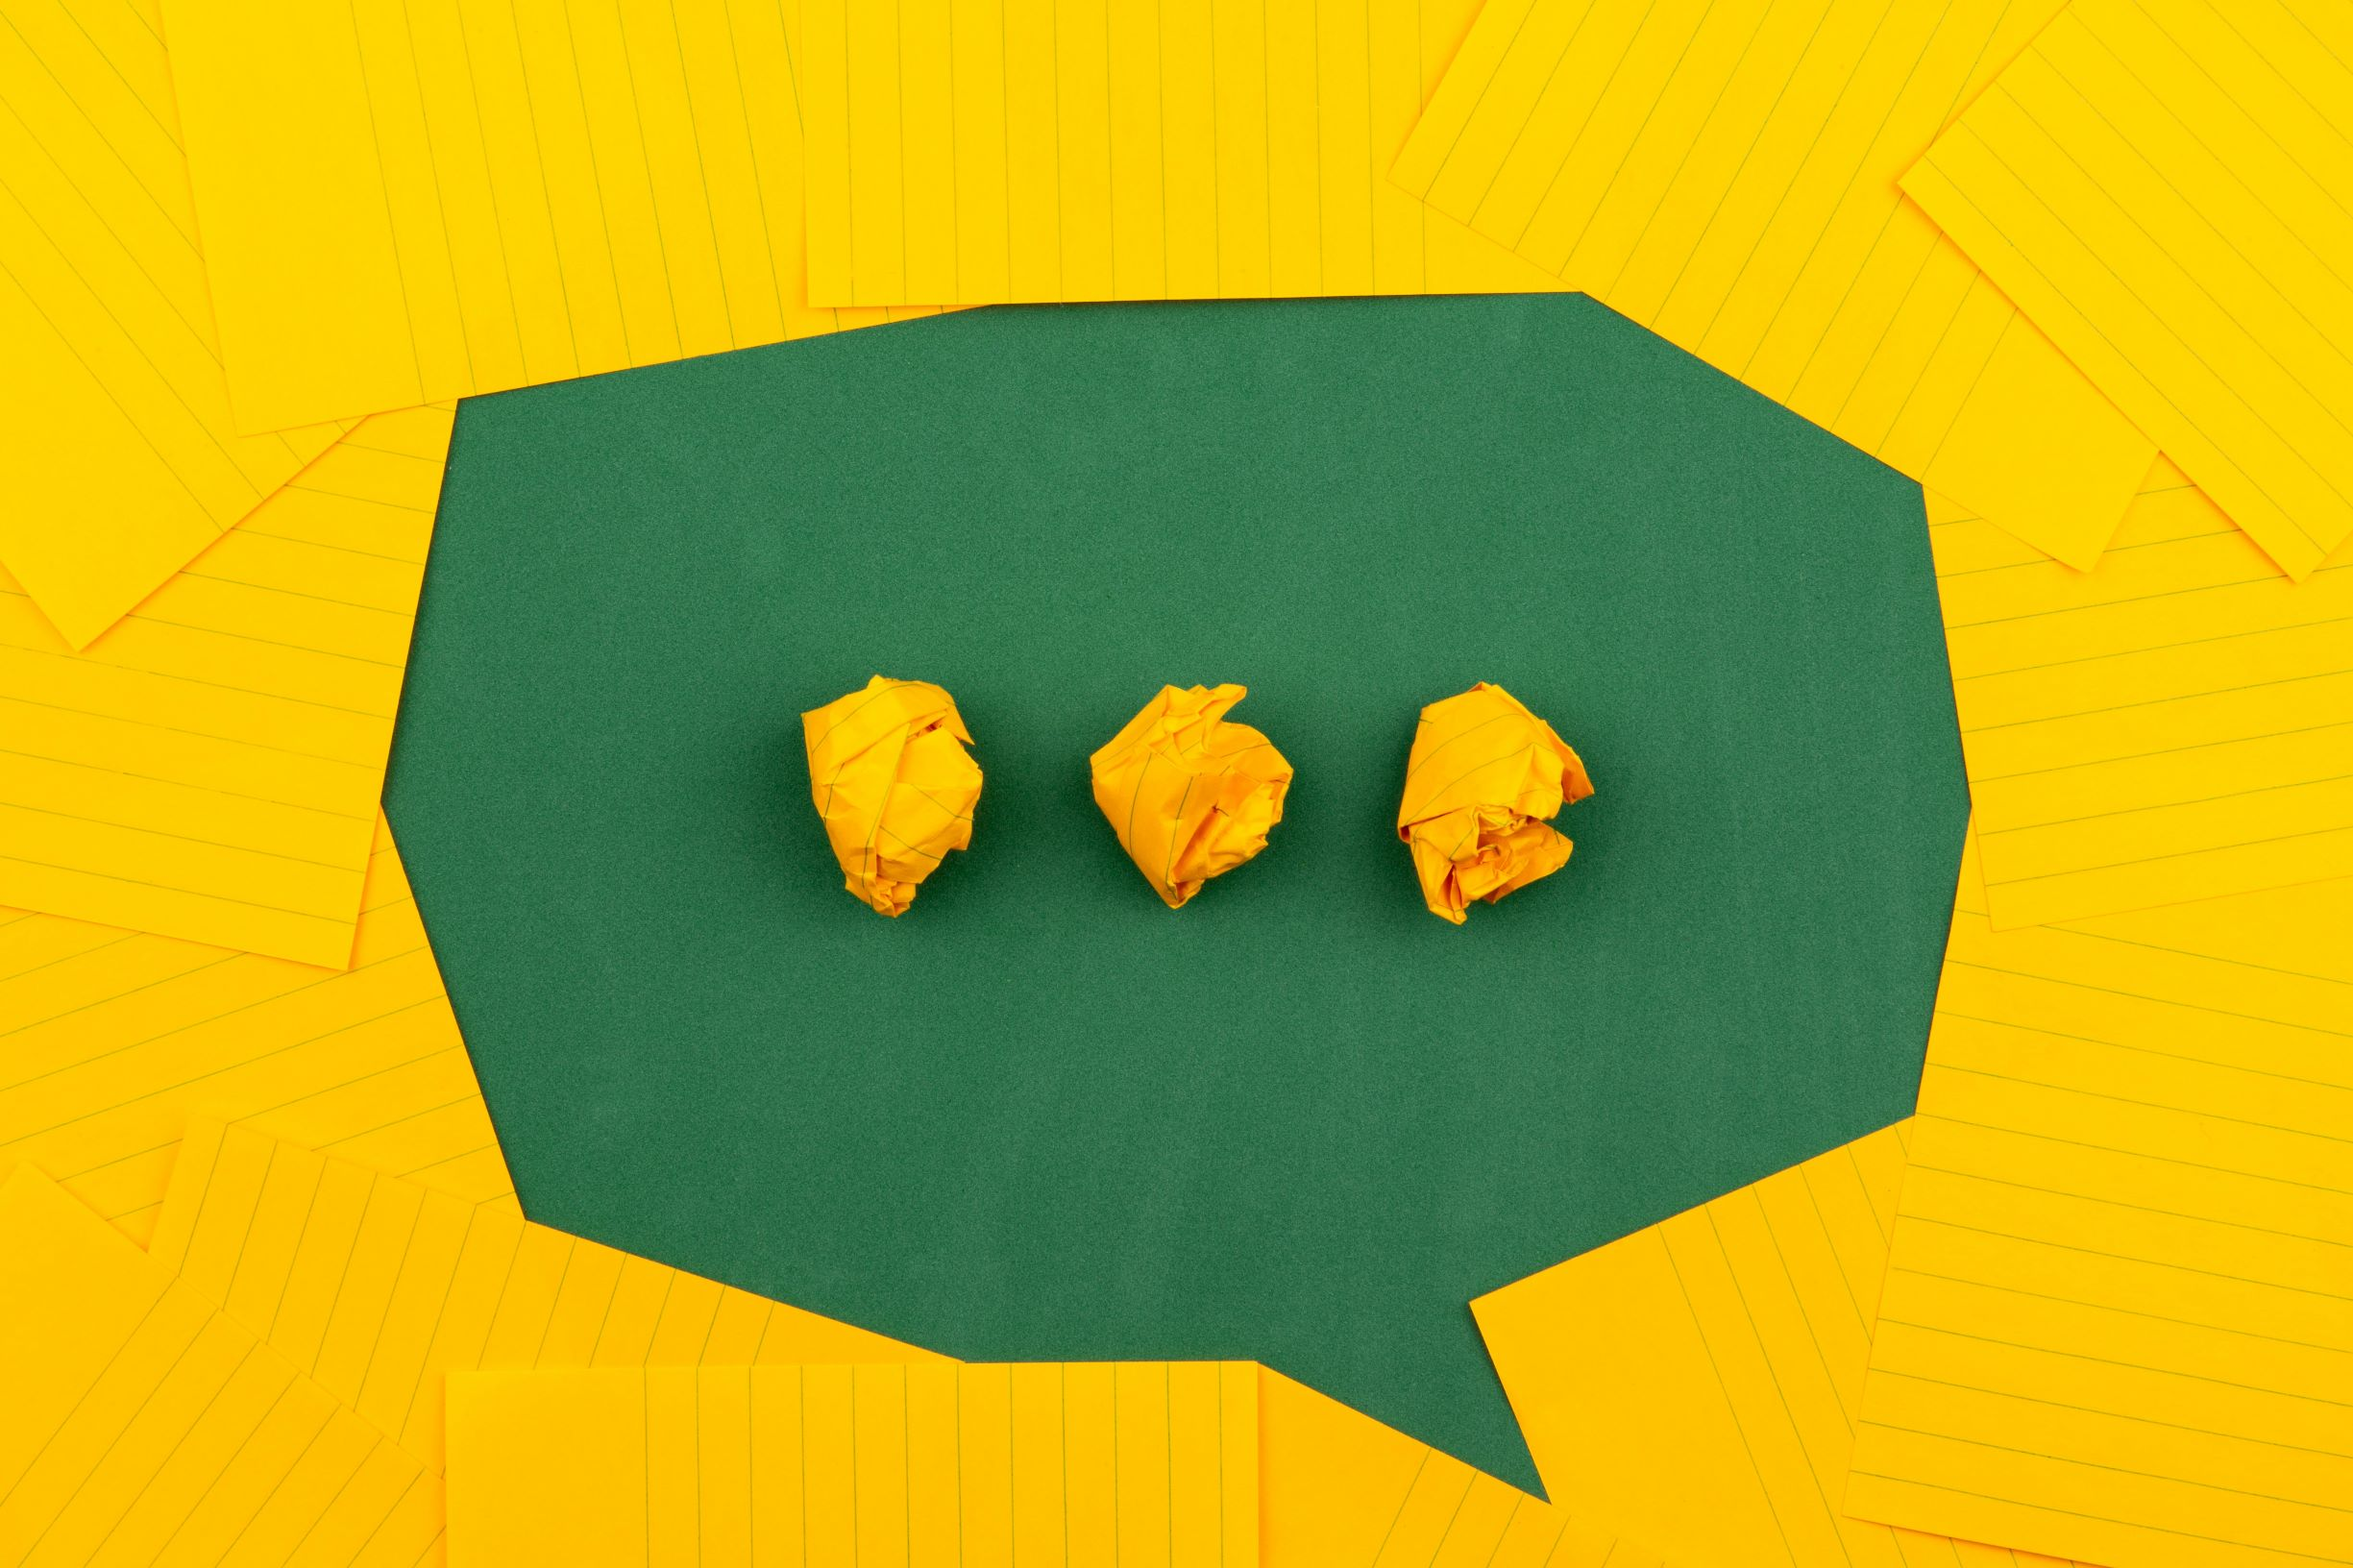 green chat icon on a yellow filed